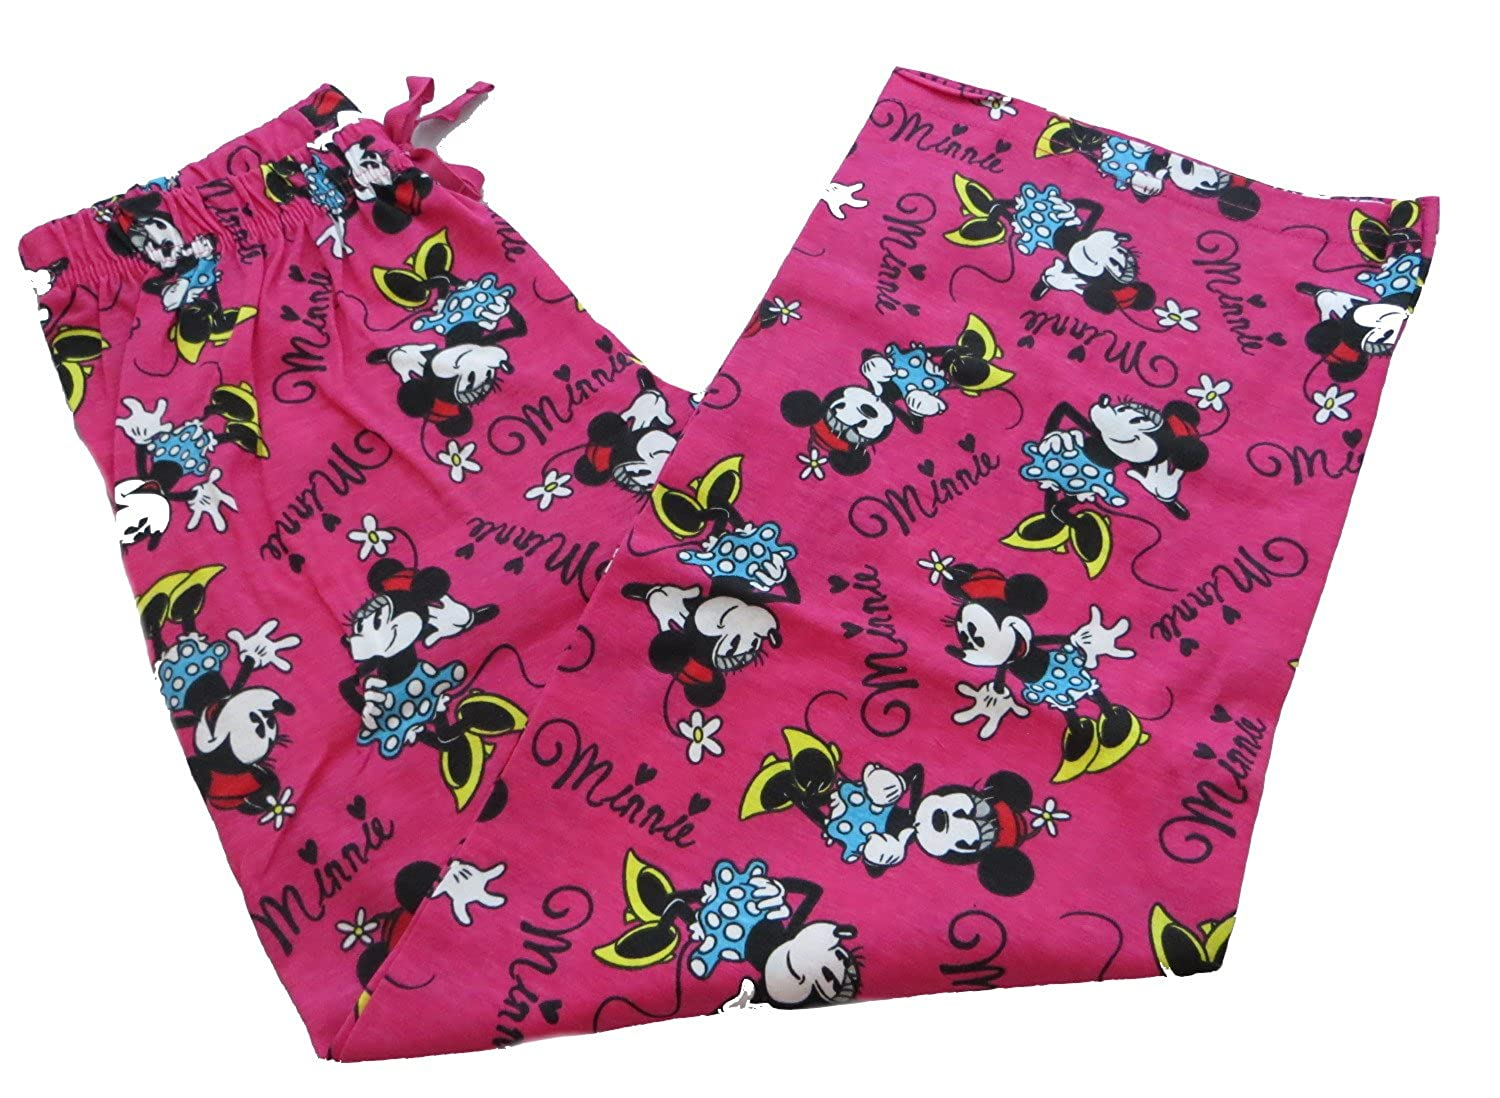 Disney Minnie Mouse Girl's Pink Lounge Pants Age 7-13 Years Available